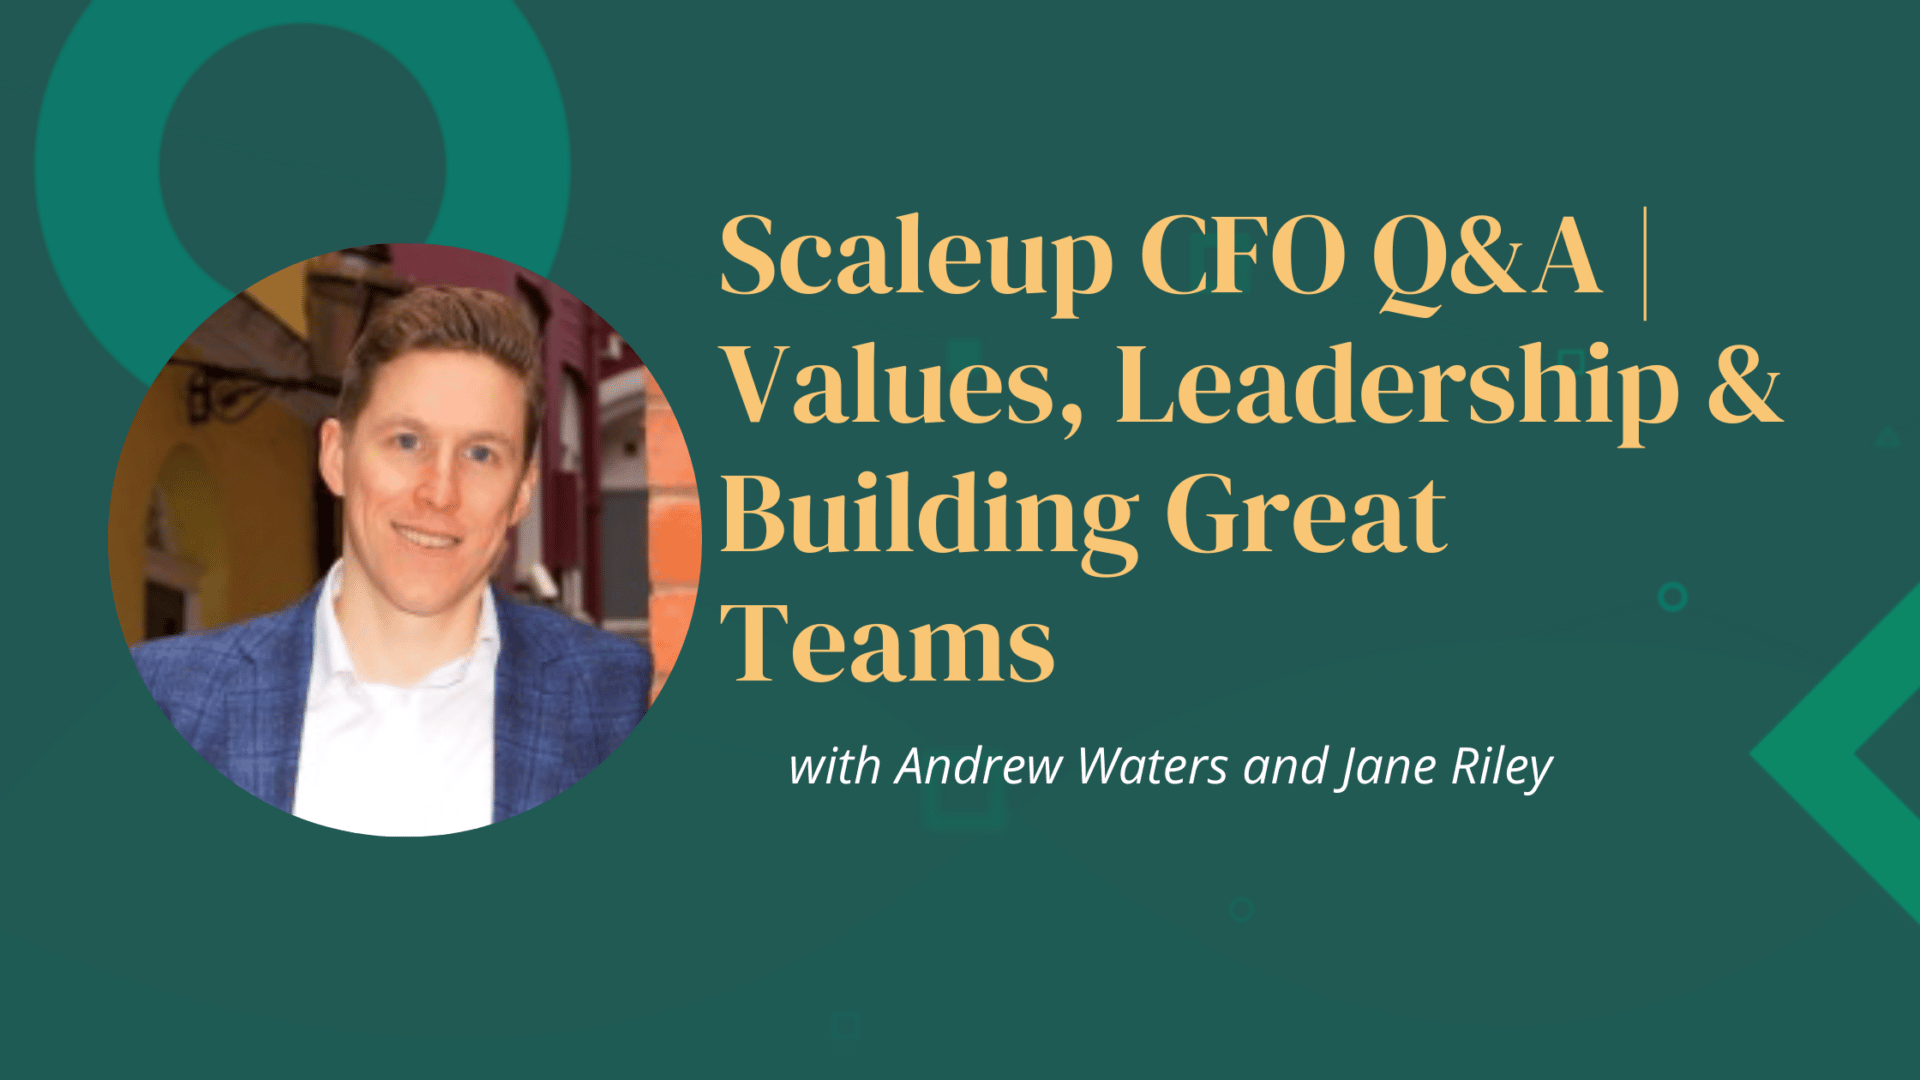 During this session Andrew will speak with Sabrina Castiglione, the CFO of the multi award winning cybersecurity business Tessian. Since joining Tessian in 2016 as their 7th team member, Sabrina has led on the Seed, Series A, B & C funding rounds with top investors such as Accel, Balderton, Sequoia & March Capital. She has also played a key role in establishing functions across Talent, People, Finance, Legal, Compliance, IT, Tech as the business scaled to 200+ employees. With a key responsibility for the People & Talent function during her time at Tessian we will discuss some of the key lessons learnt when it comes to core values, leadership and building great teams.